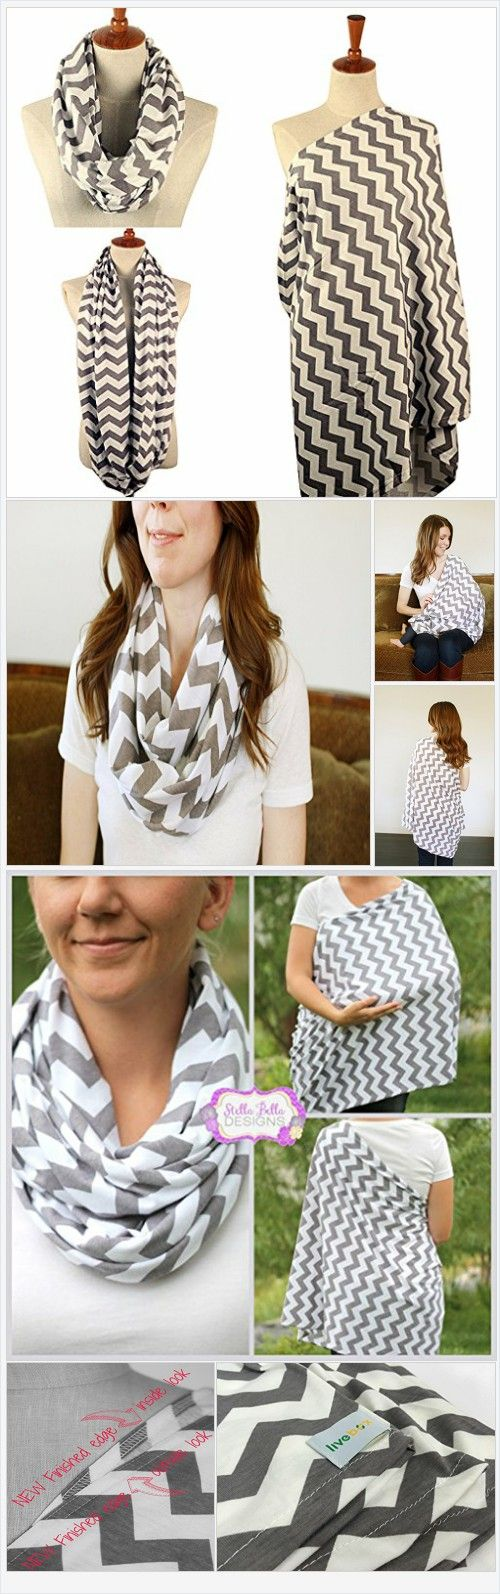 LiveBox Extra Long Breast Feeding Infinity Nursing Scarf (Grey and White Chevron) - Every Thing Baby